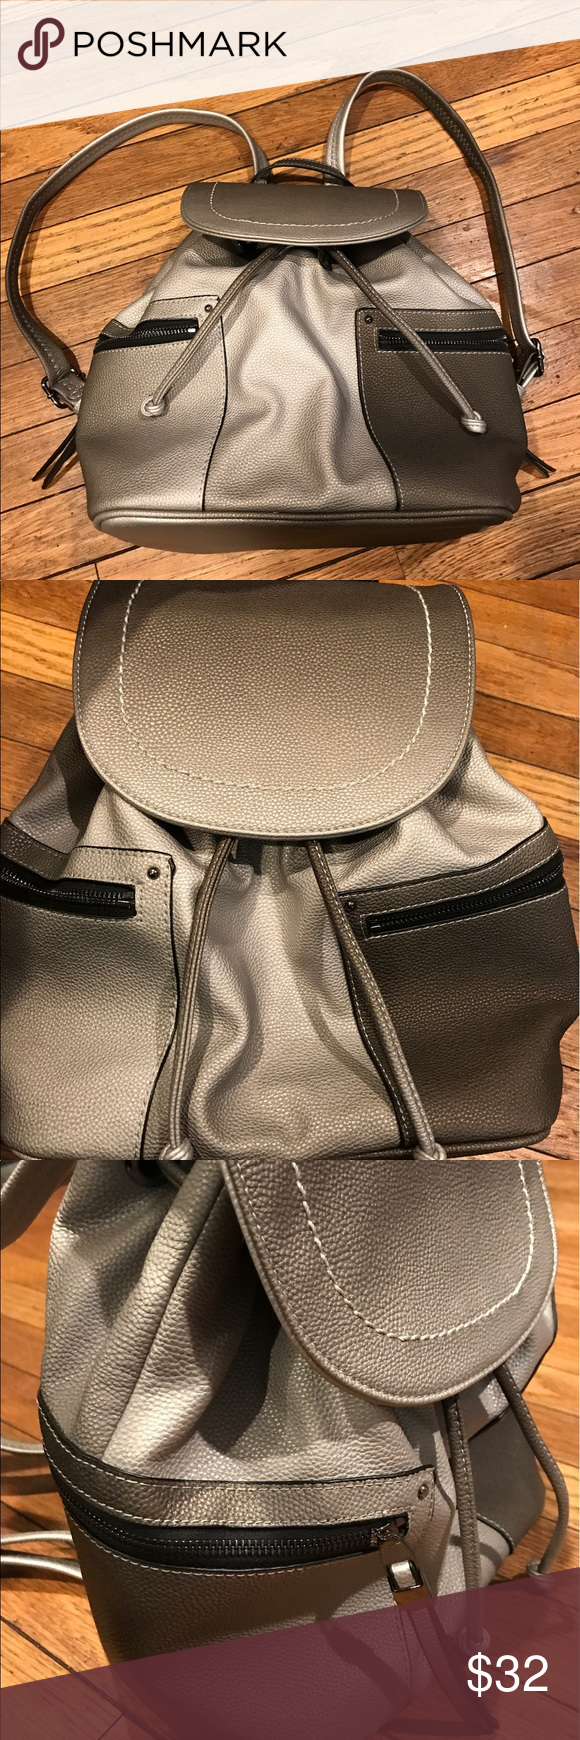 Well loved Moda Luxe Ombré Backpack Only used a handful of times. Decided backpack purses aren't for me. Can fit lots of stuff and super cute. Has two big exterior side zipper pockets and one inside as well as 2 slots inside to place keys or lipstick. Moda Luxe Bags Backpacks